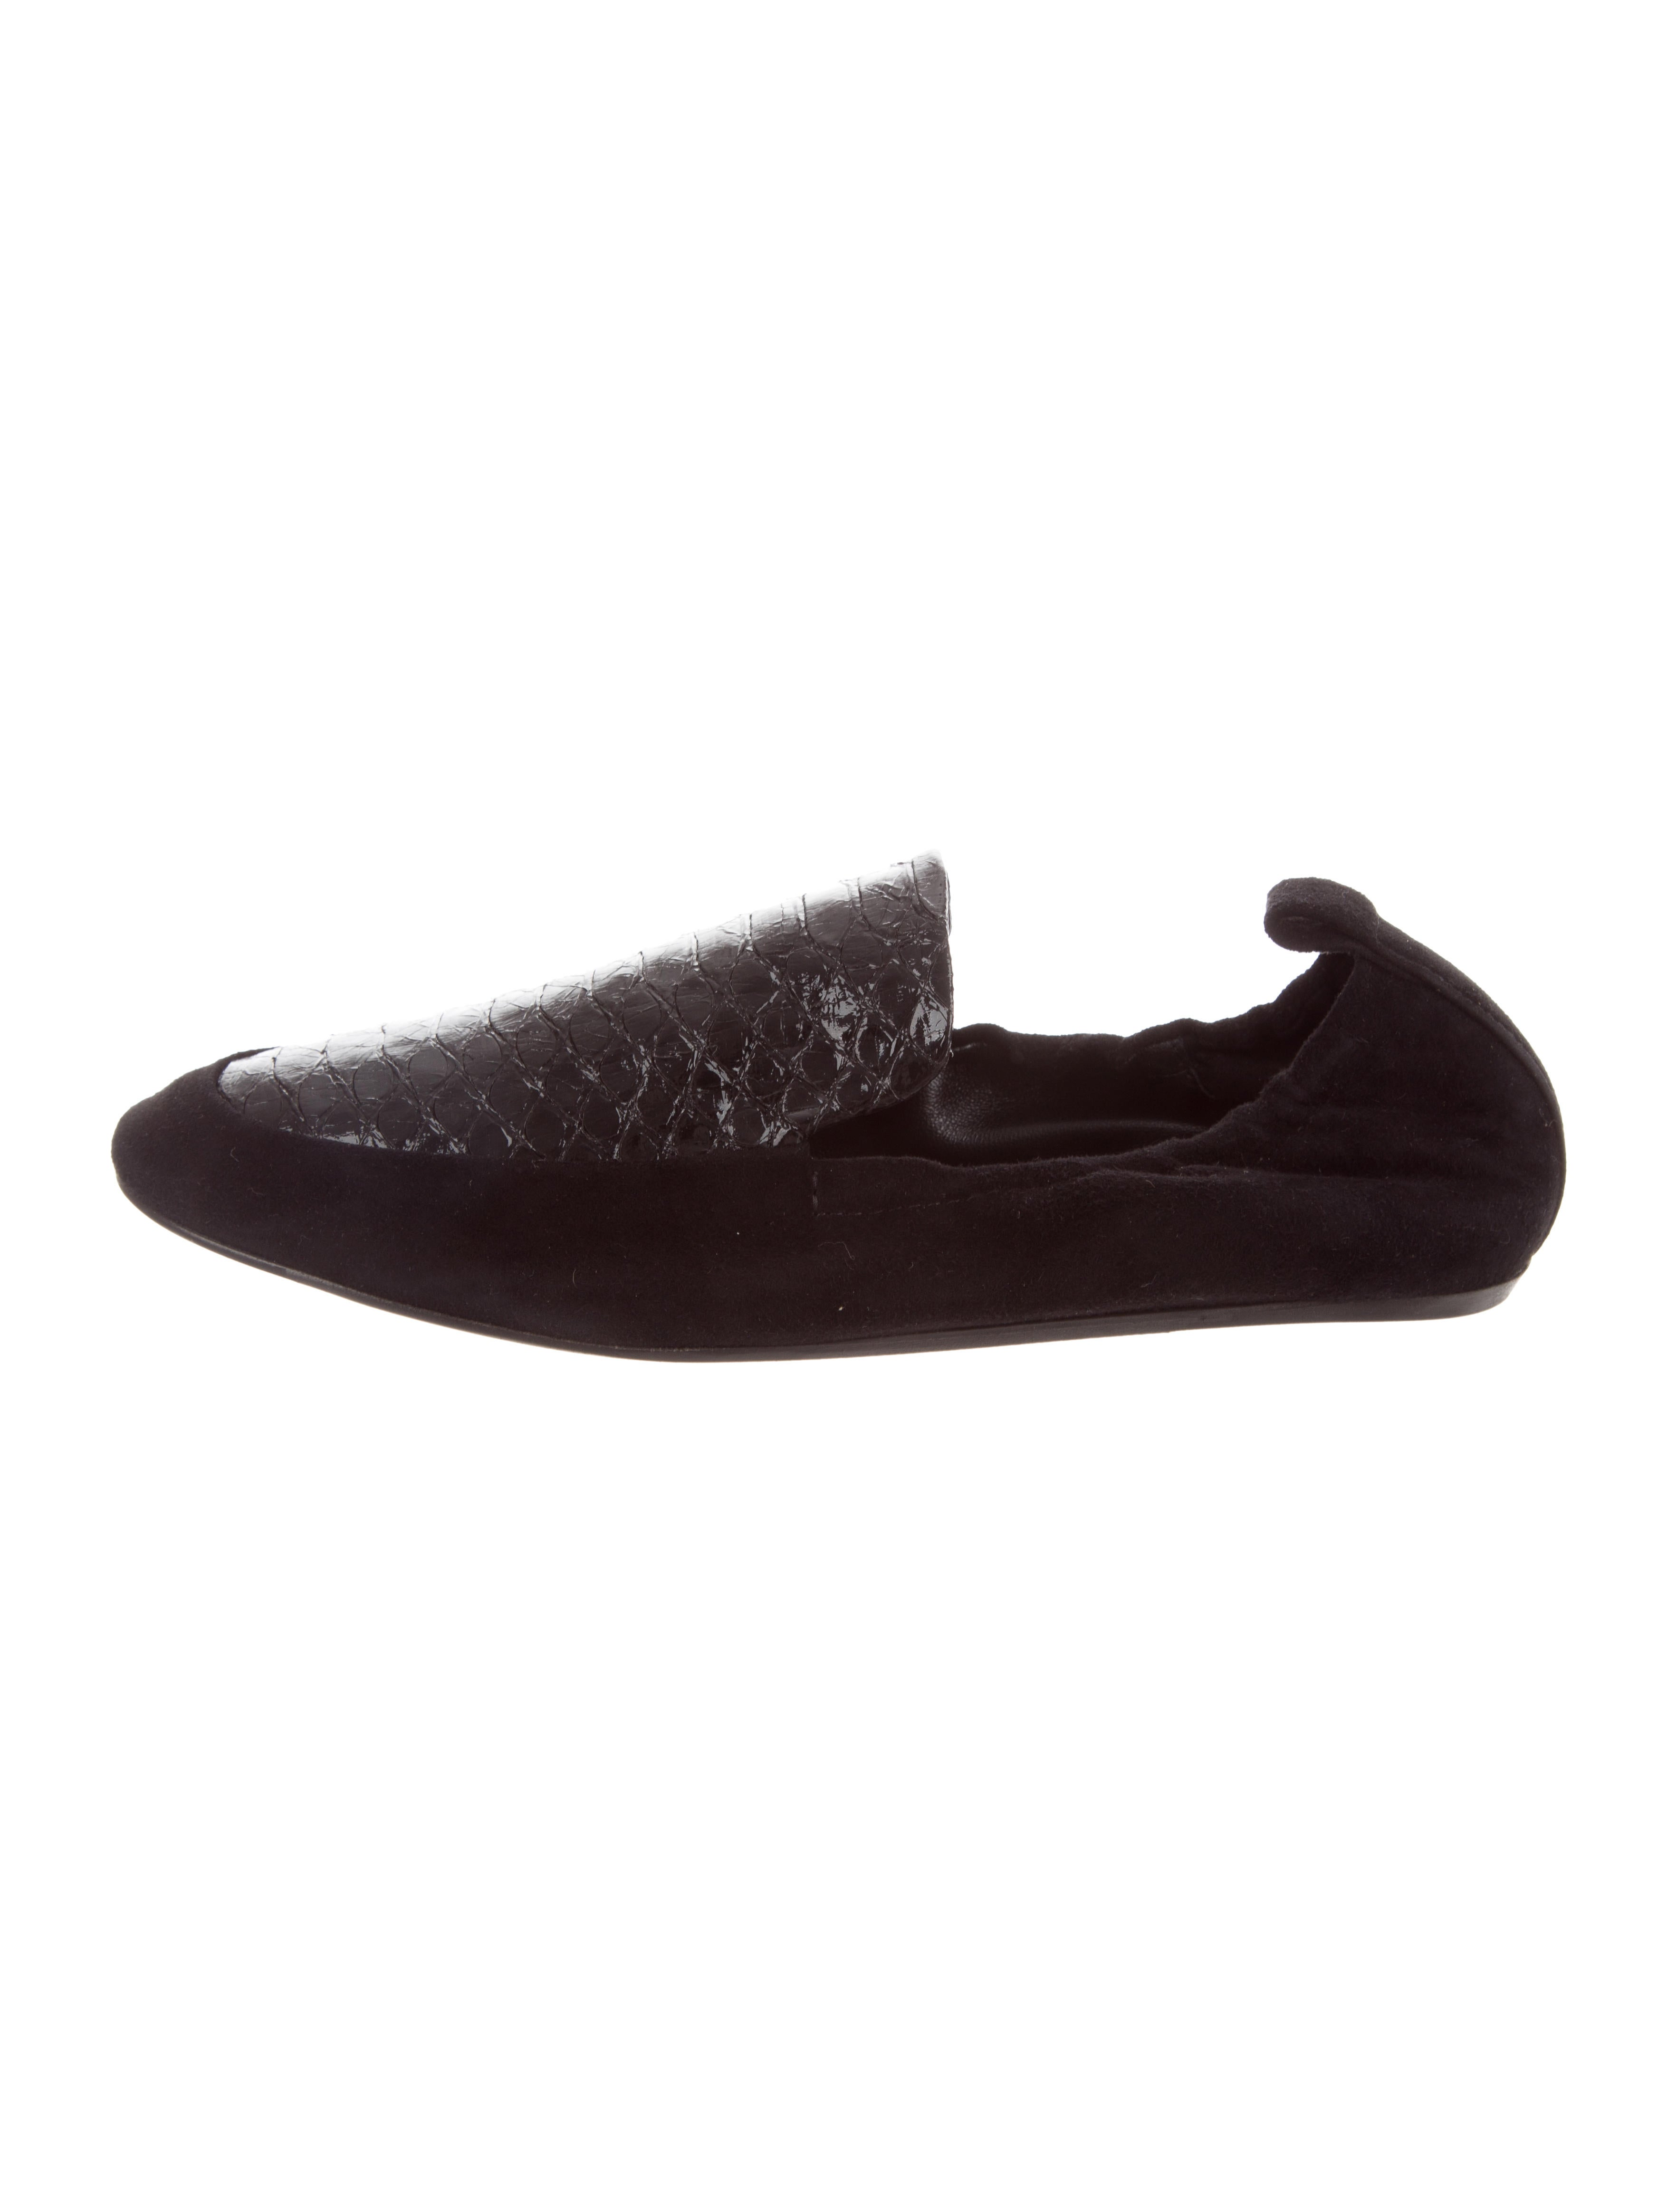 clearance cheap 100% guaranteed for sale Lanvin Suede Python Loafers w/ Tags csI29X